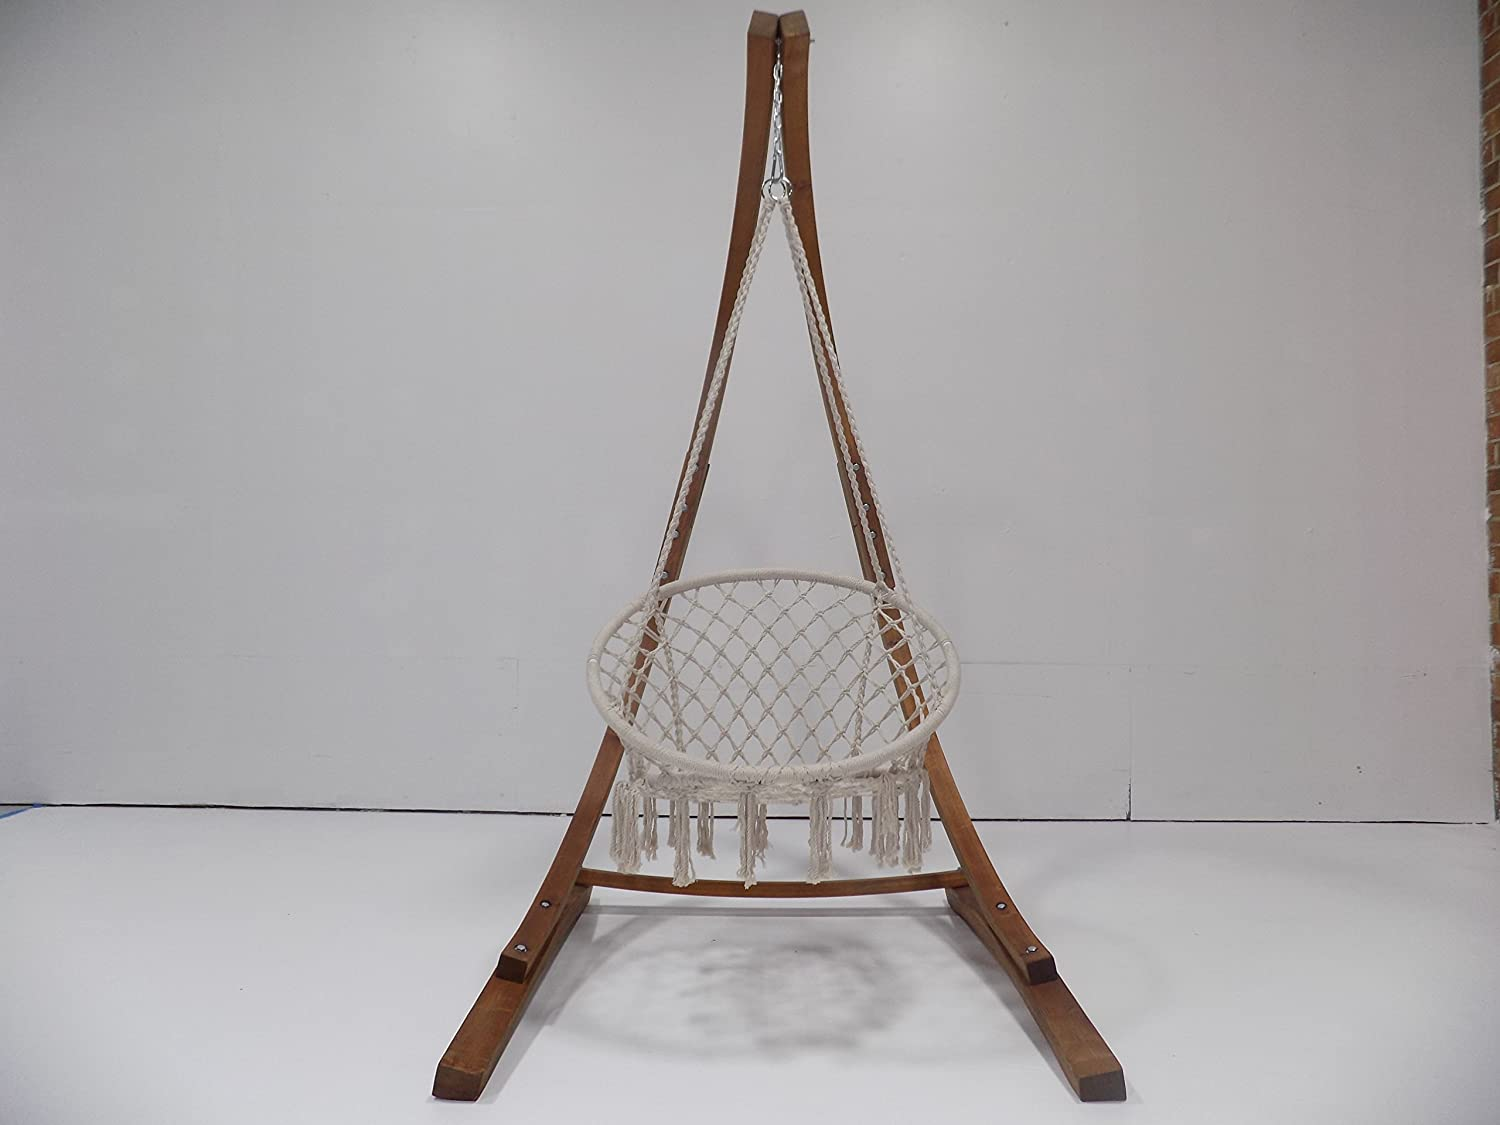 Deck Yard 265LB Weight Capacity. Teak Stain Hammock Chair Stand w//Bohemian Chic Macrame Dream-Catcher Tassel Rope Swing Patio Petra Leisure 7 Ft Garden Perfect for Indoor//Outdoor Home